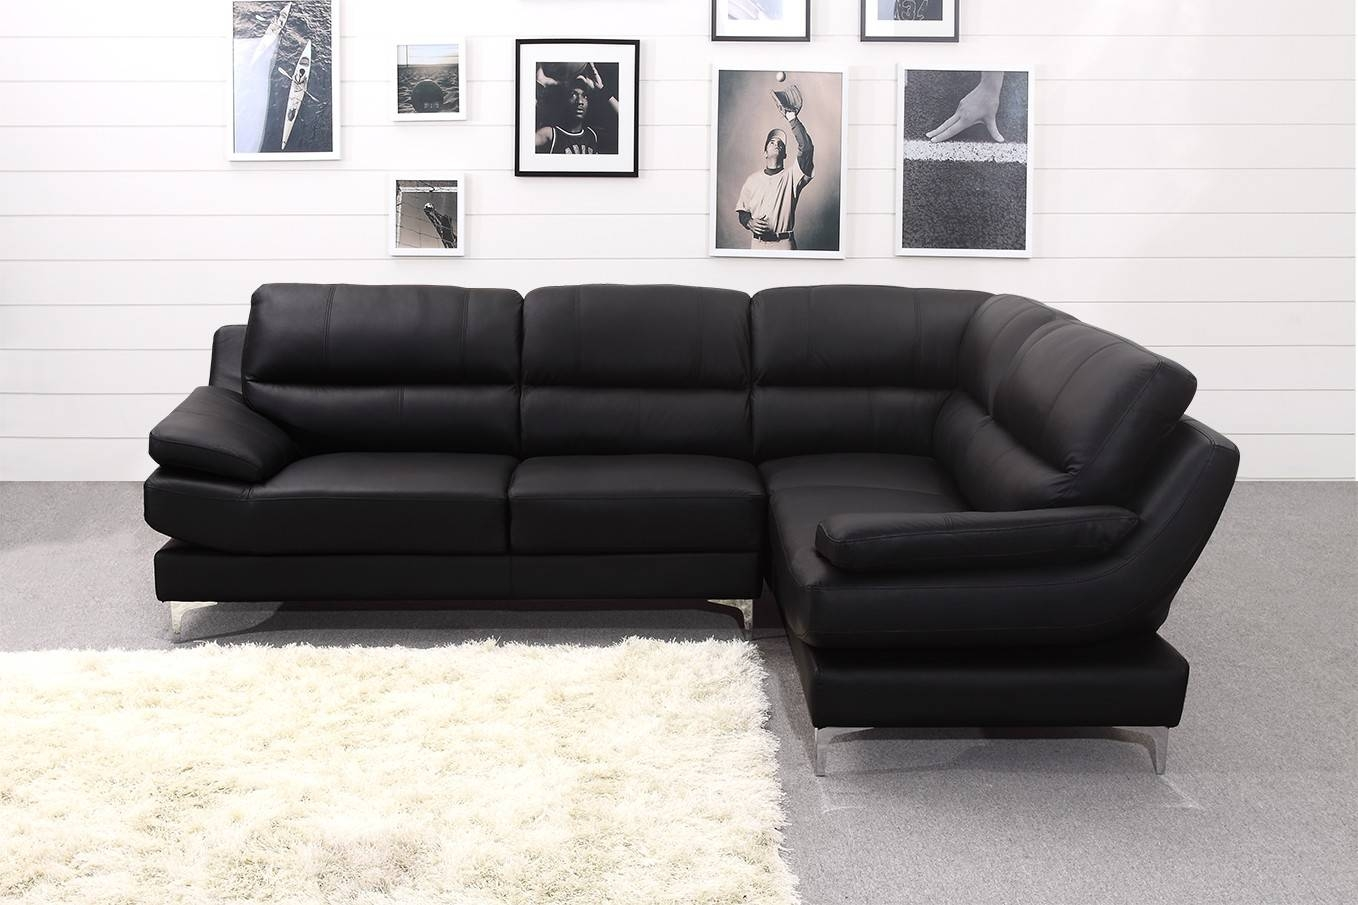 Leather Corner Sofa | Tehranmix Decoration inside Large Black Leather Corner Sofas (Image 18 of 30)